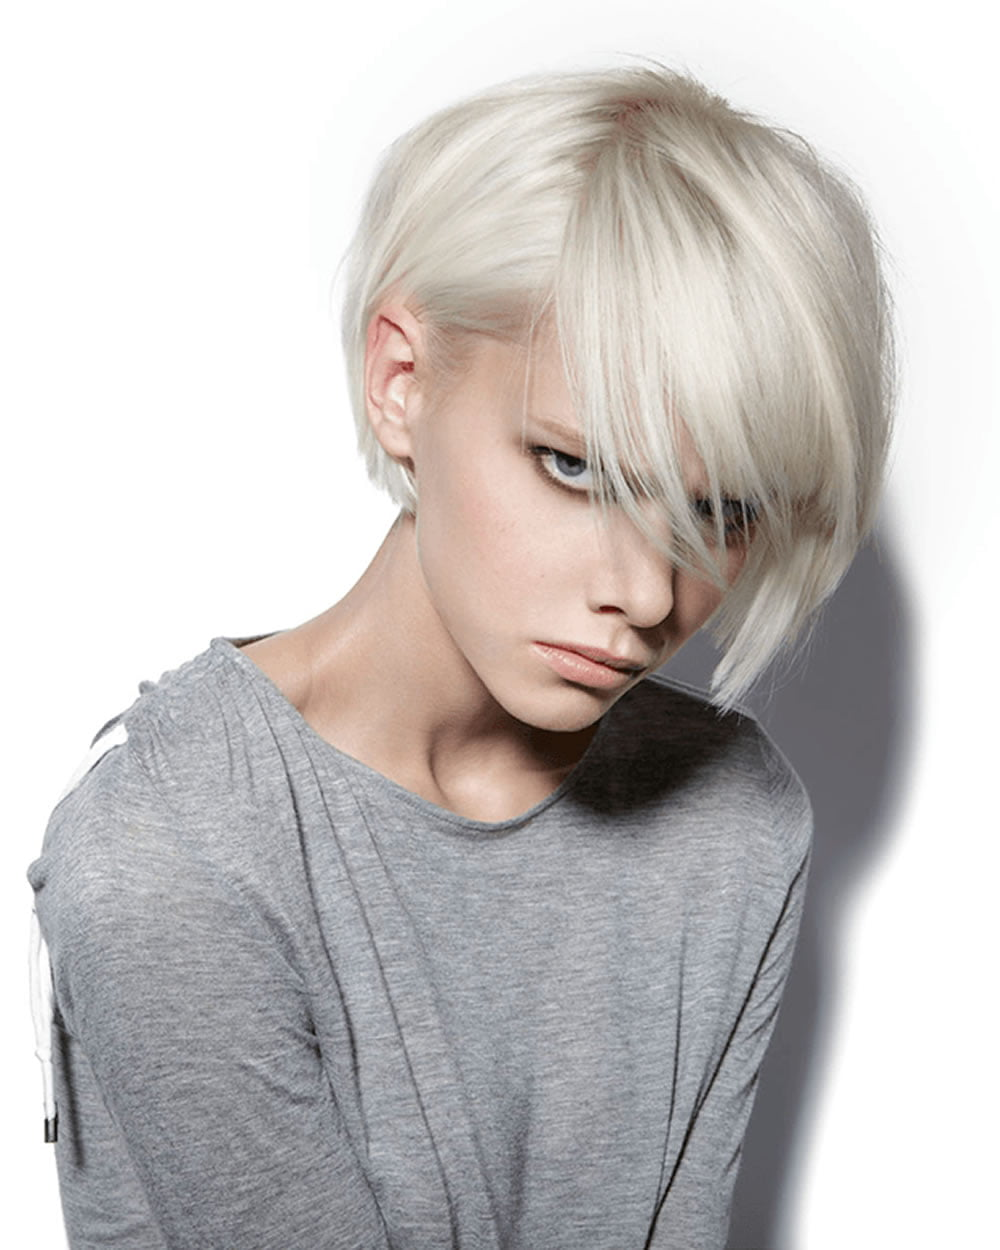 Spring Hair 2019: Spring 2018 Short Haircut Summer 2019 Pixie Hairstyle For